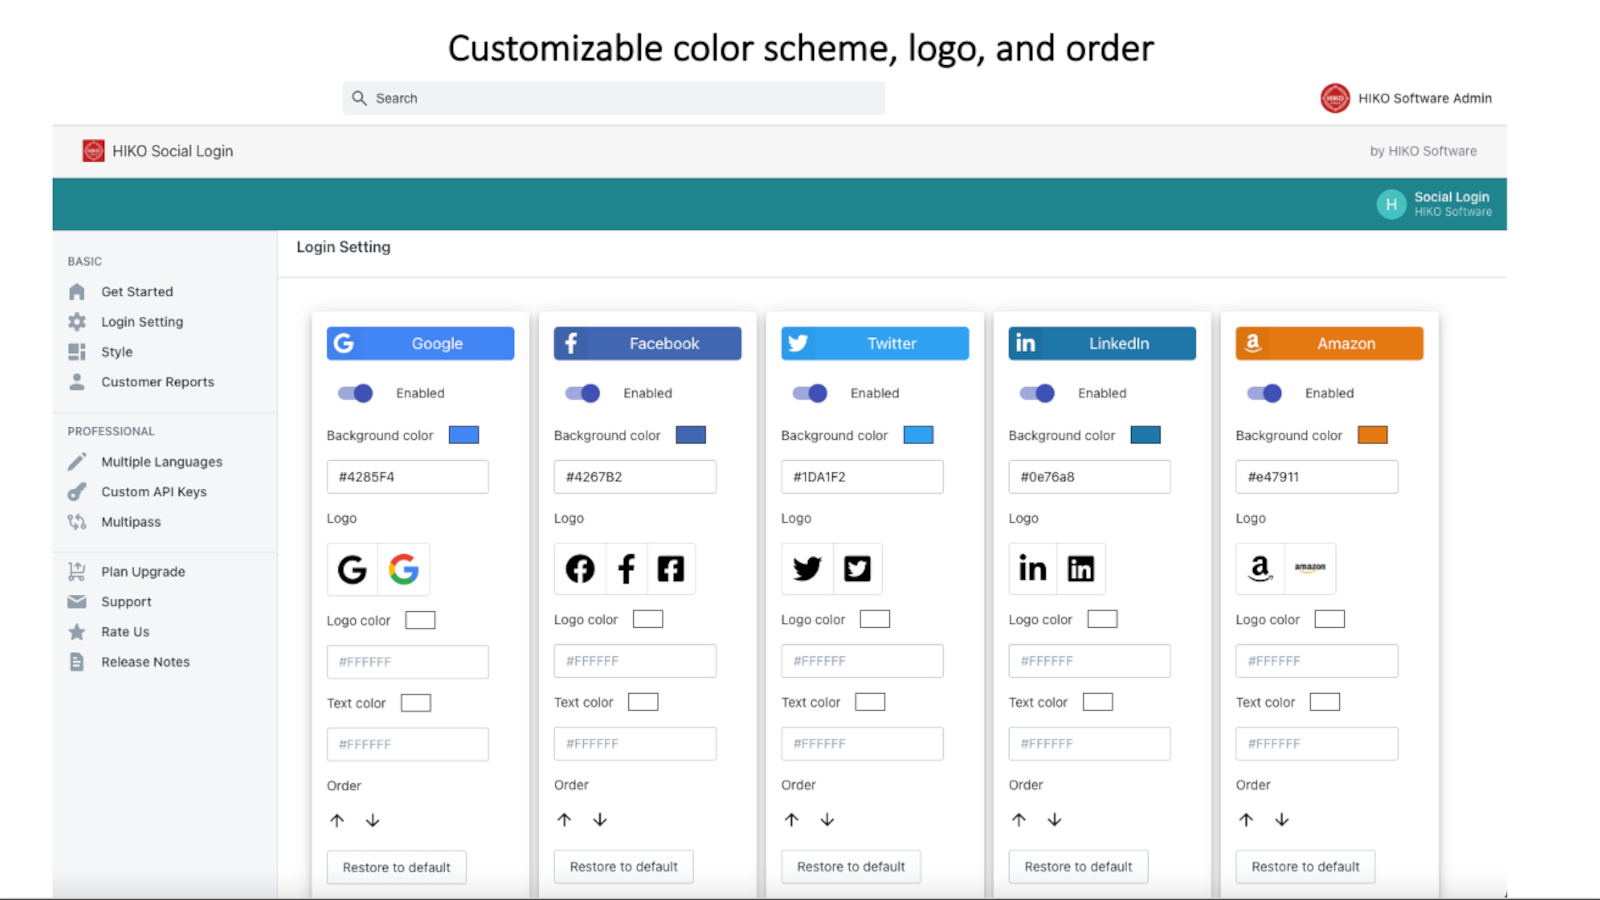 Customizable color scheme, logo, and order